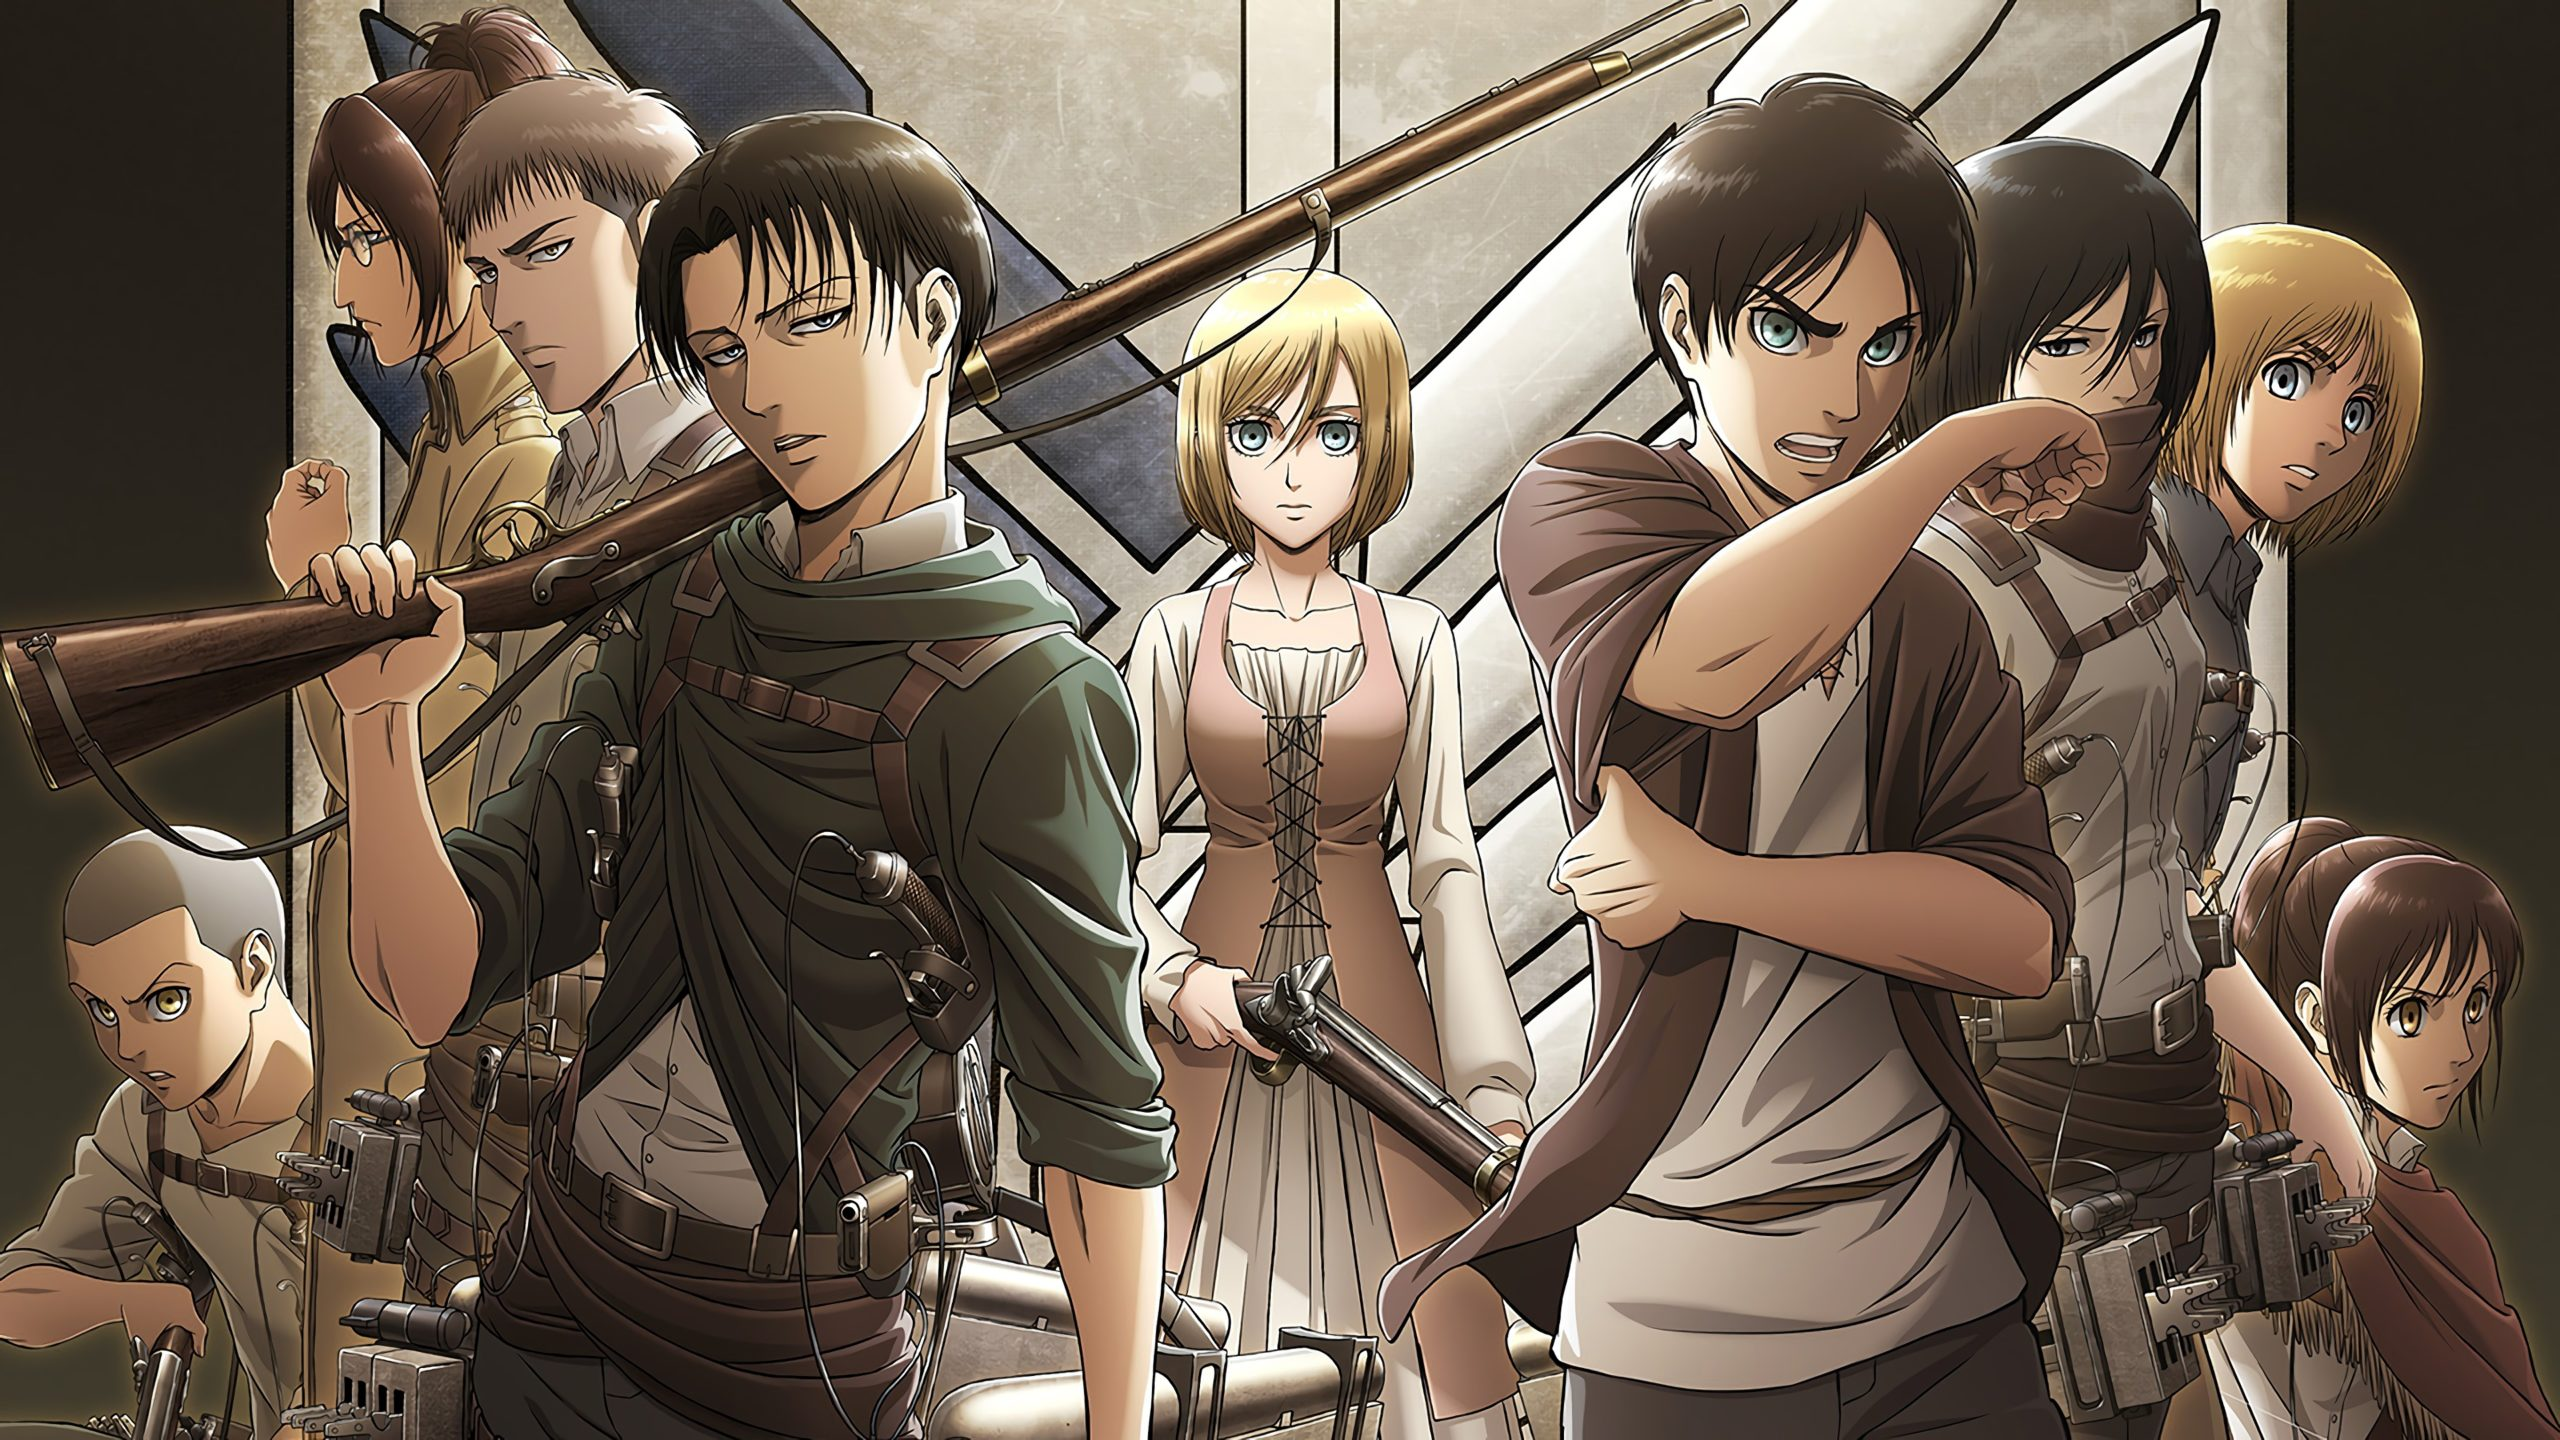 Attack on Titan Chapter 138 Spoilers and Theories for Character Deaths